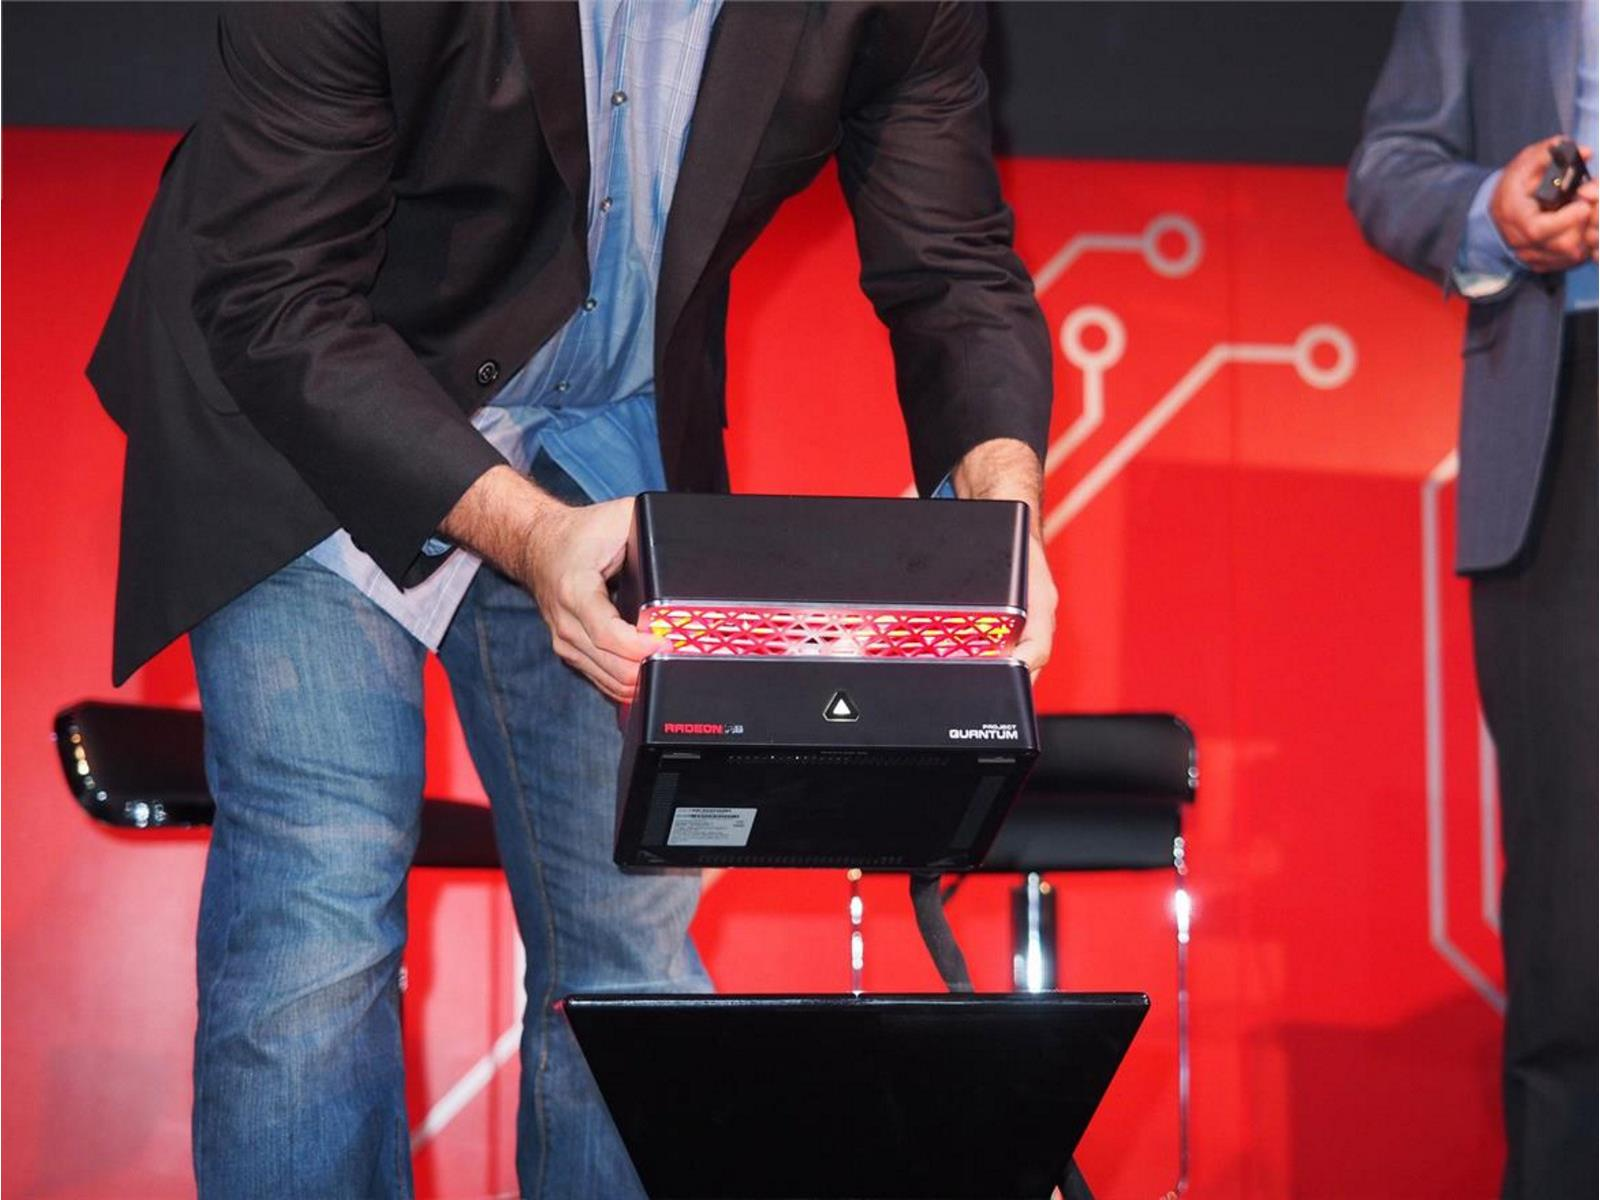 Amd Project Quantum Possibly Revived Zen 3 And Rdna 2 Mini Gaming Pc Incoming Hothardware